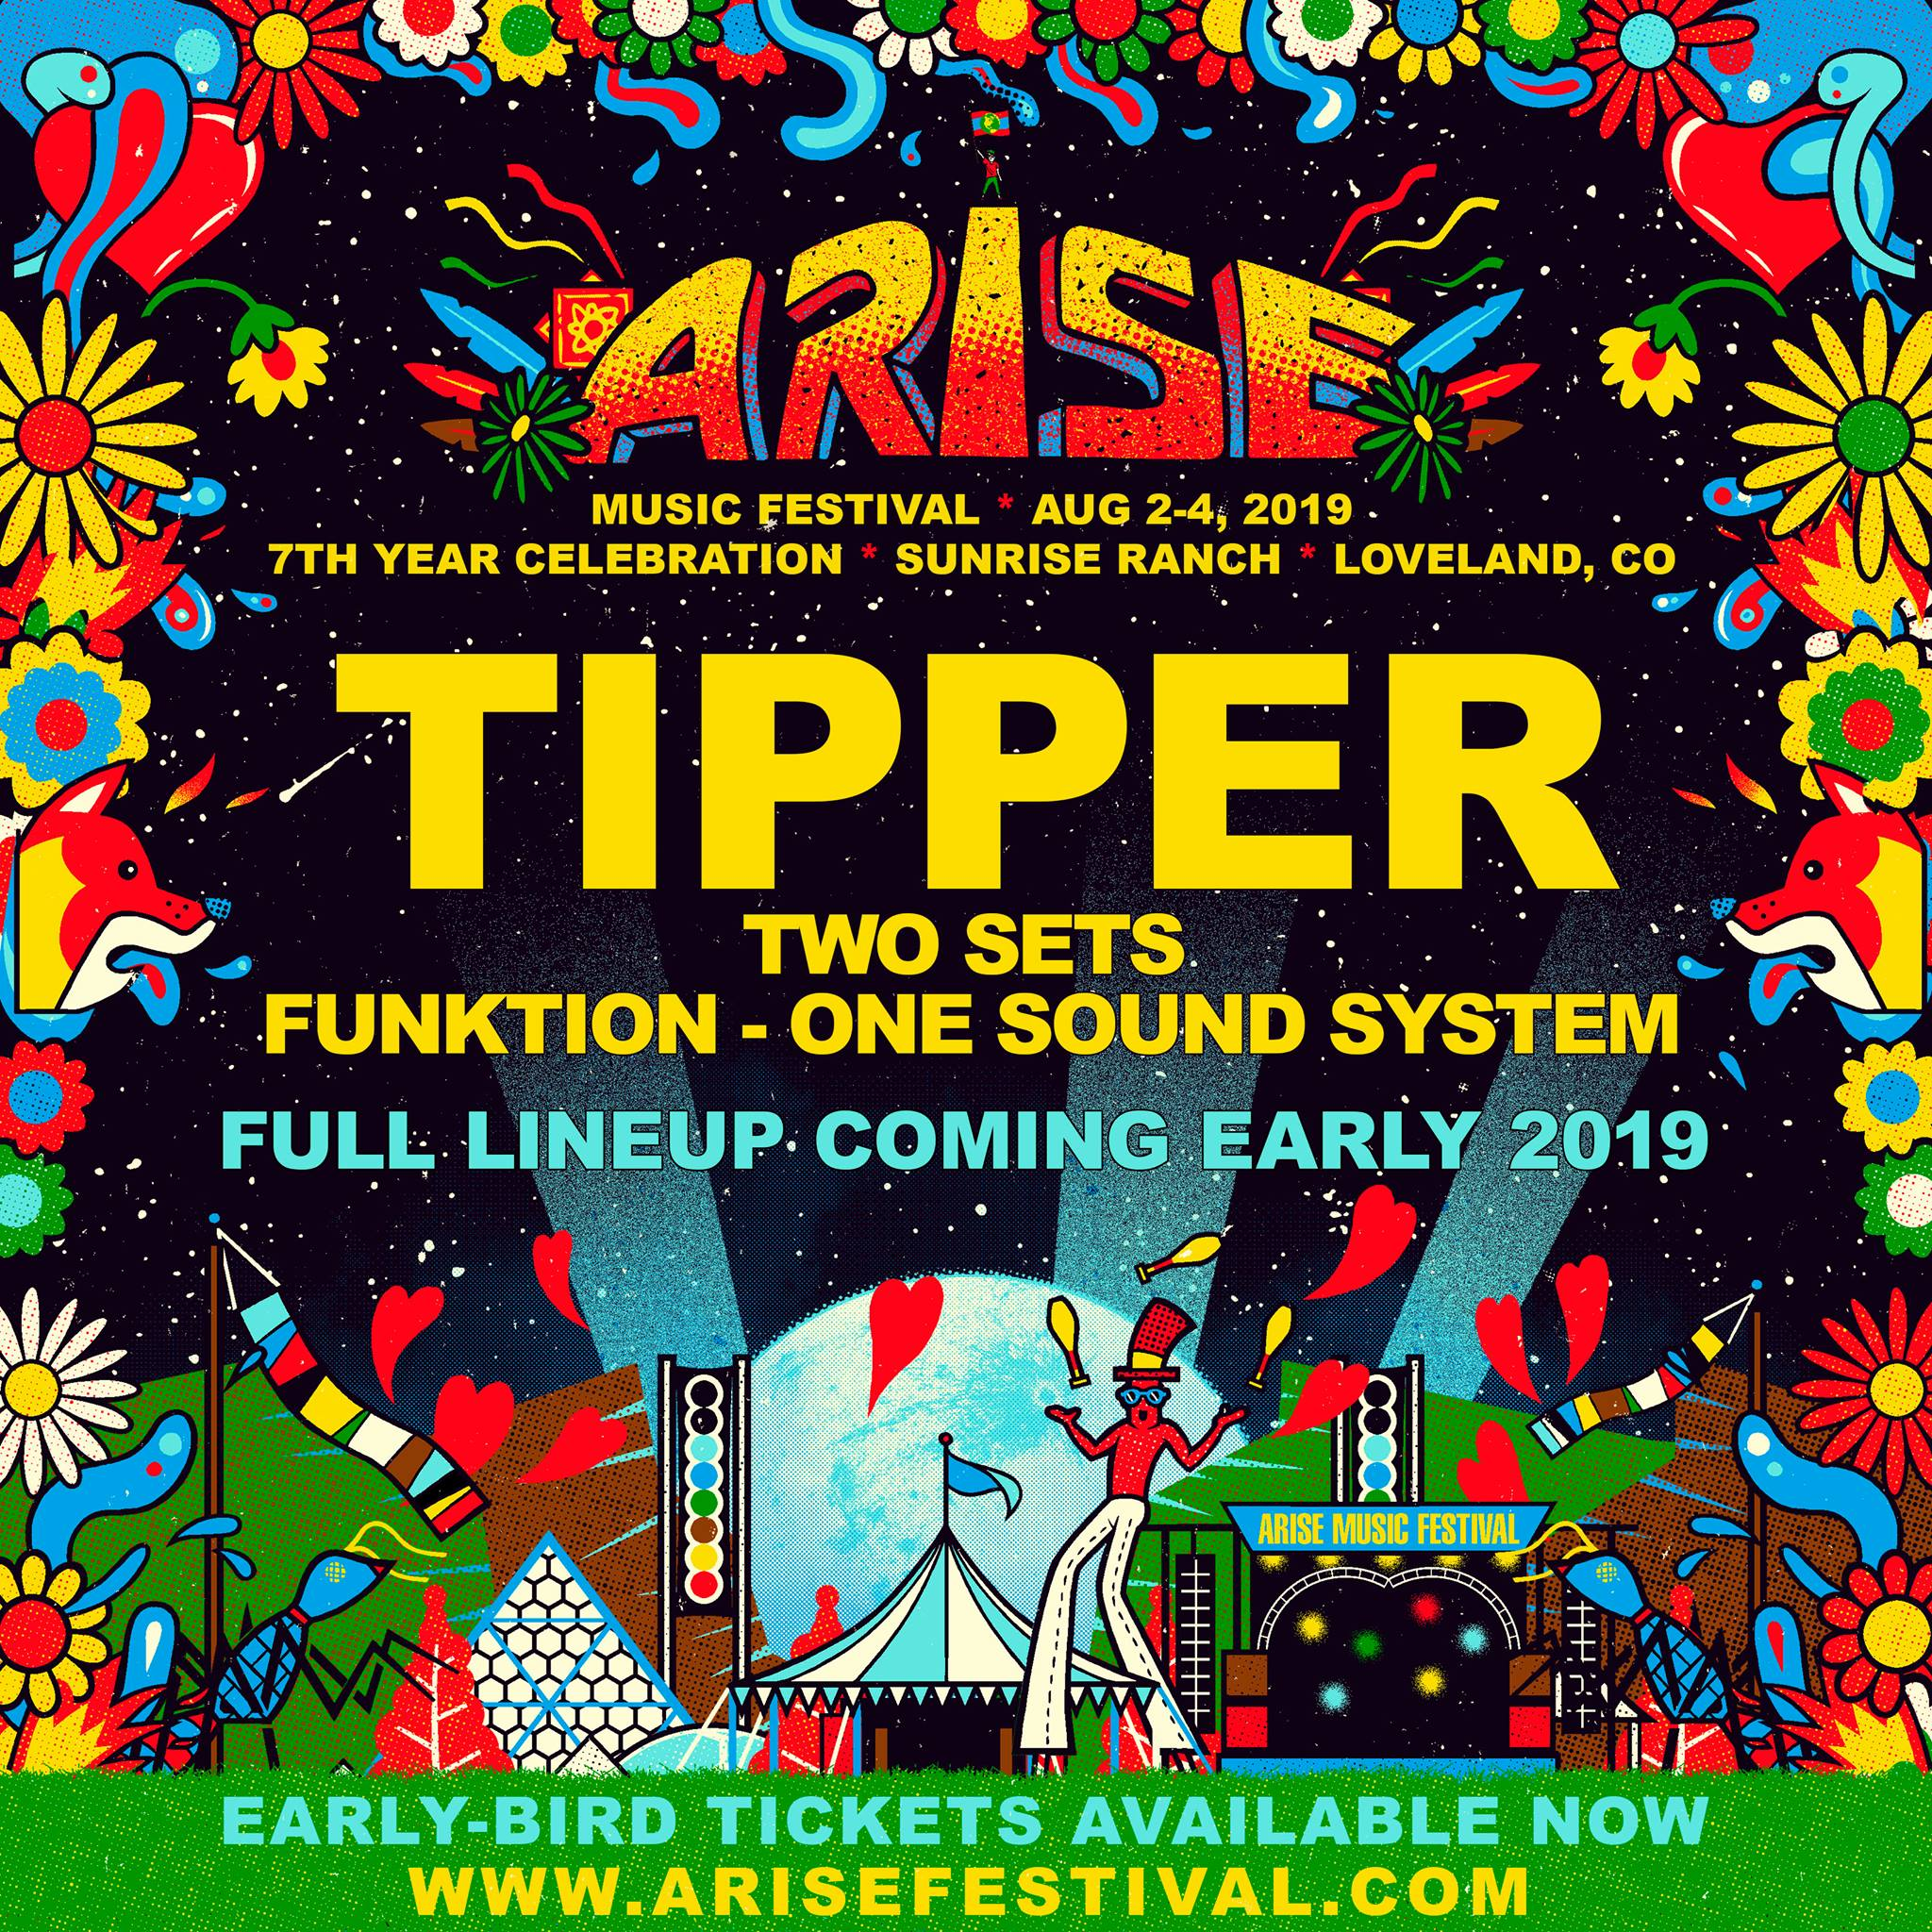 ARISE MUSIC FESTIVAL Announces 2019 Headliner TIPPER